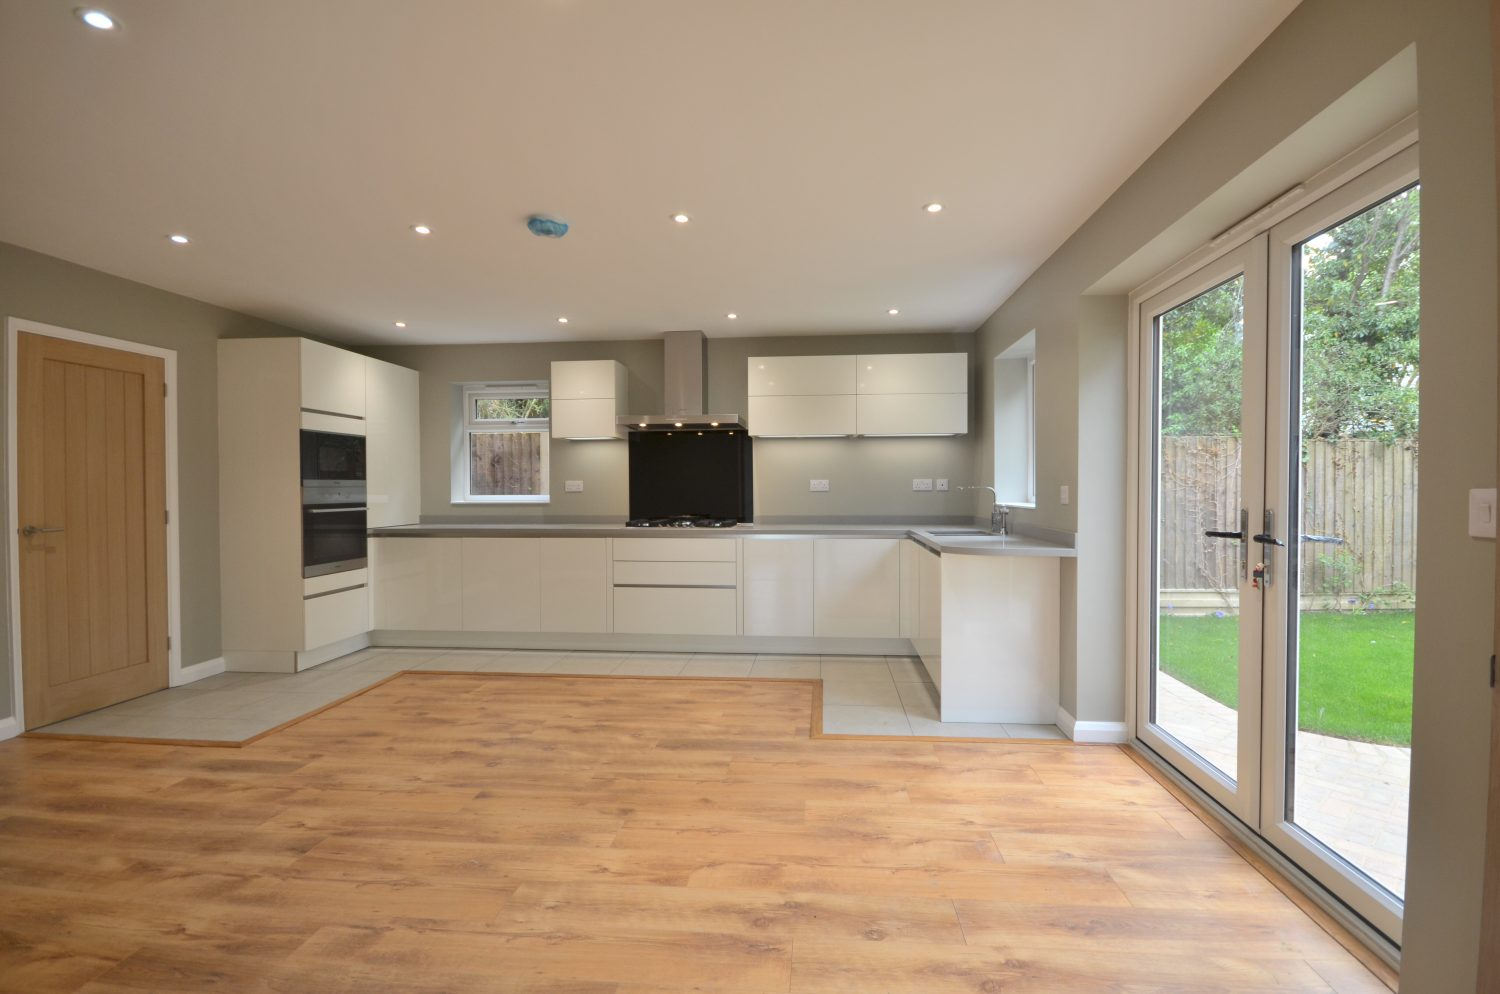 Large modern kitchen with laminate floor and high quality appliances